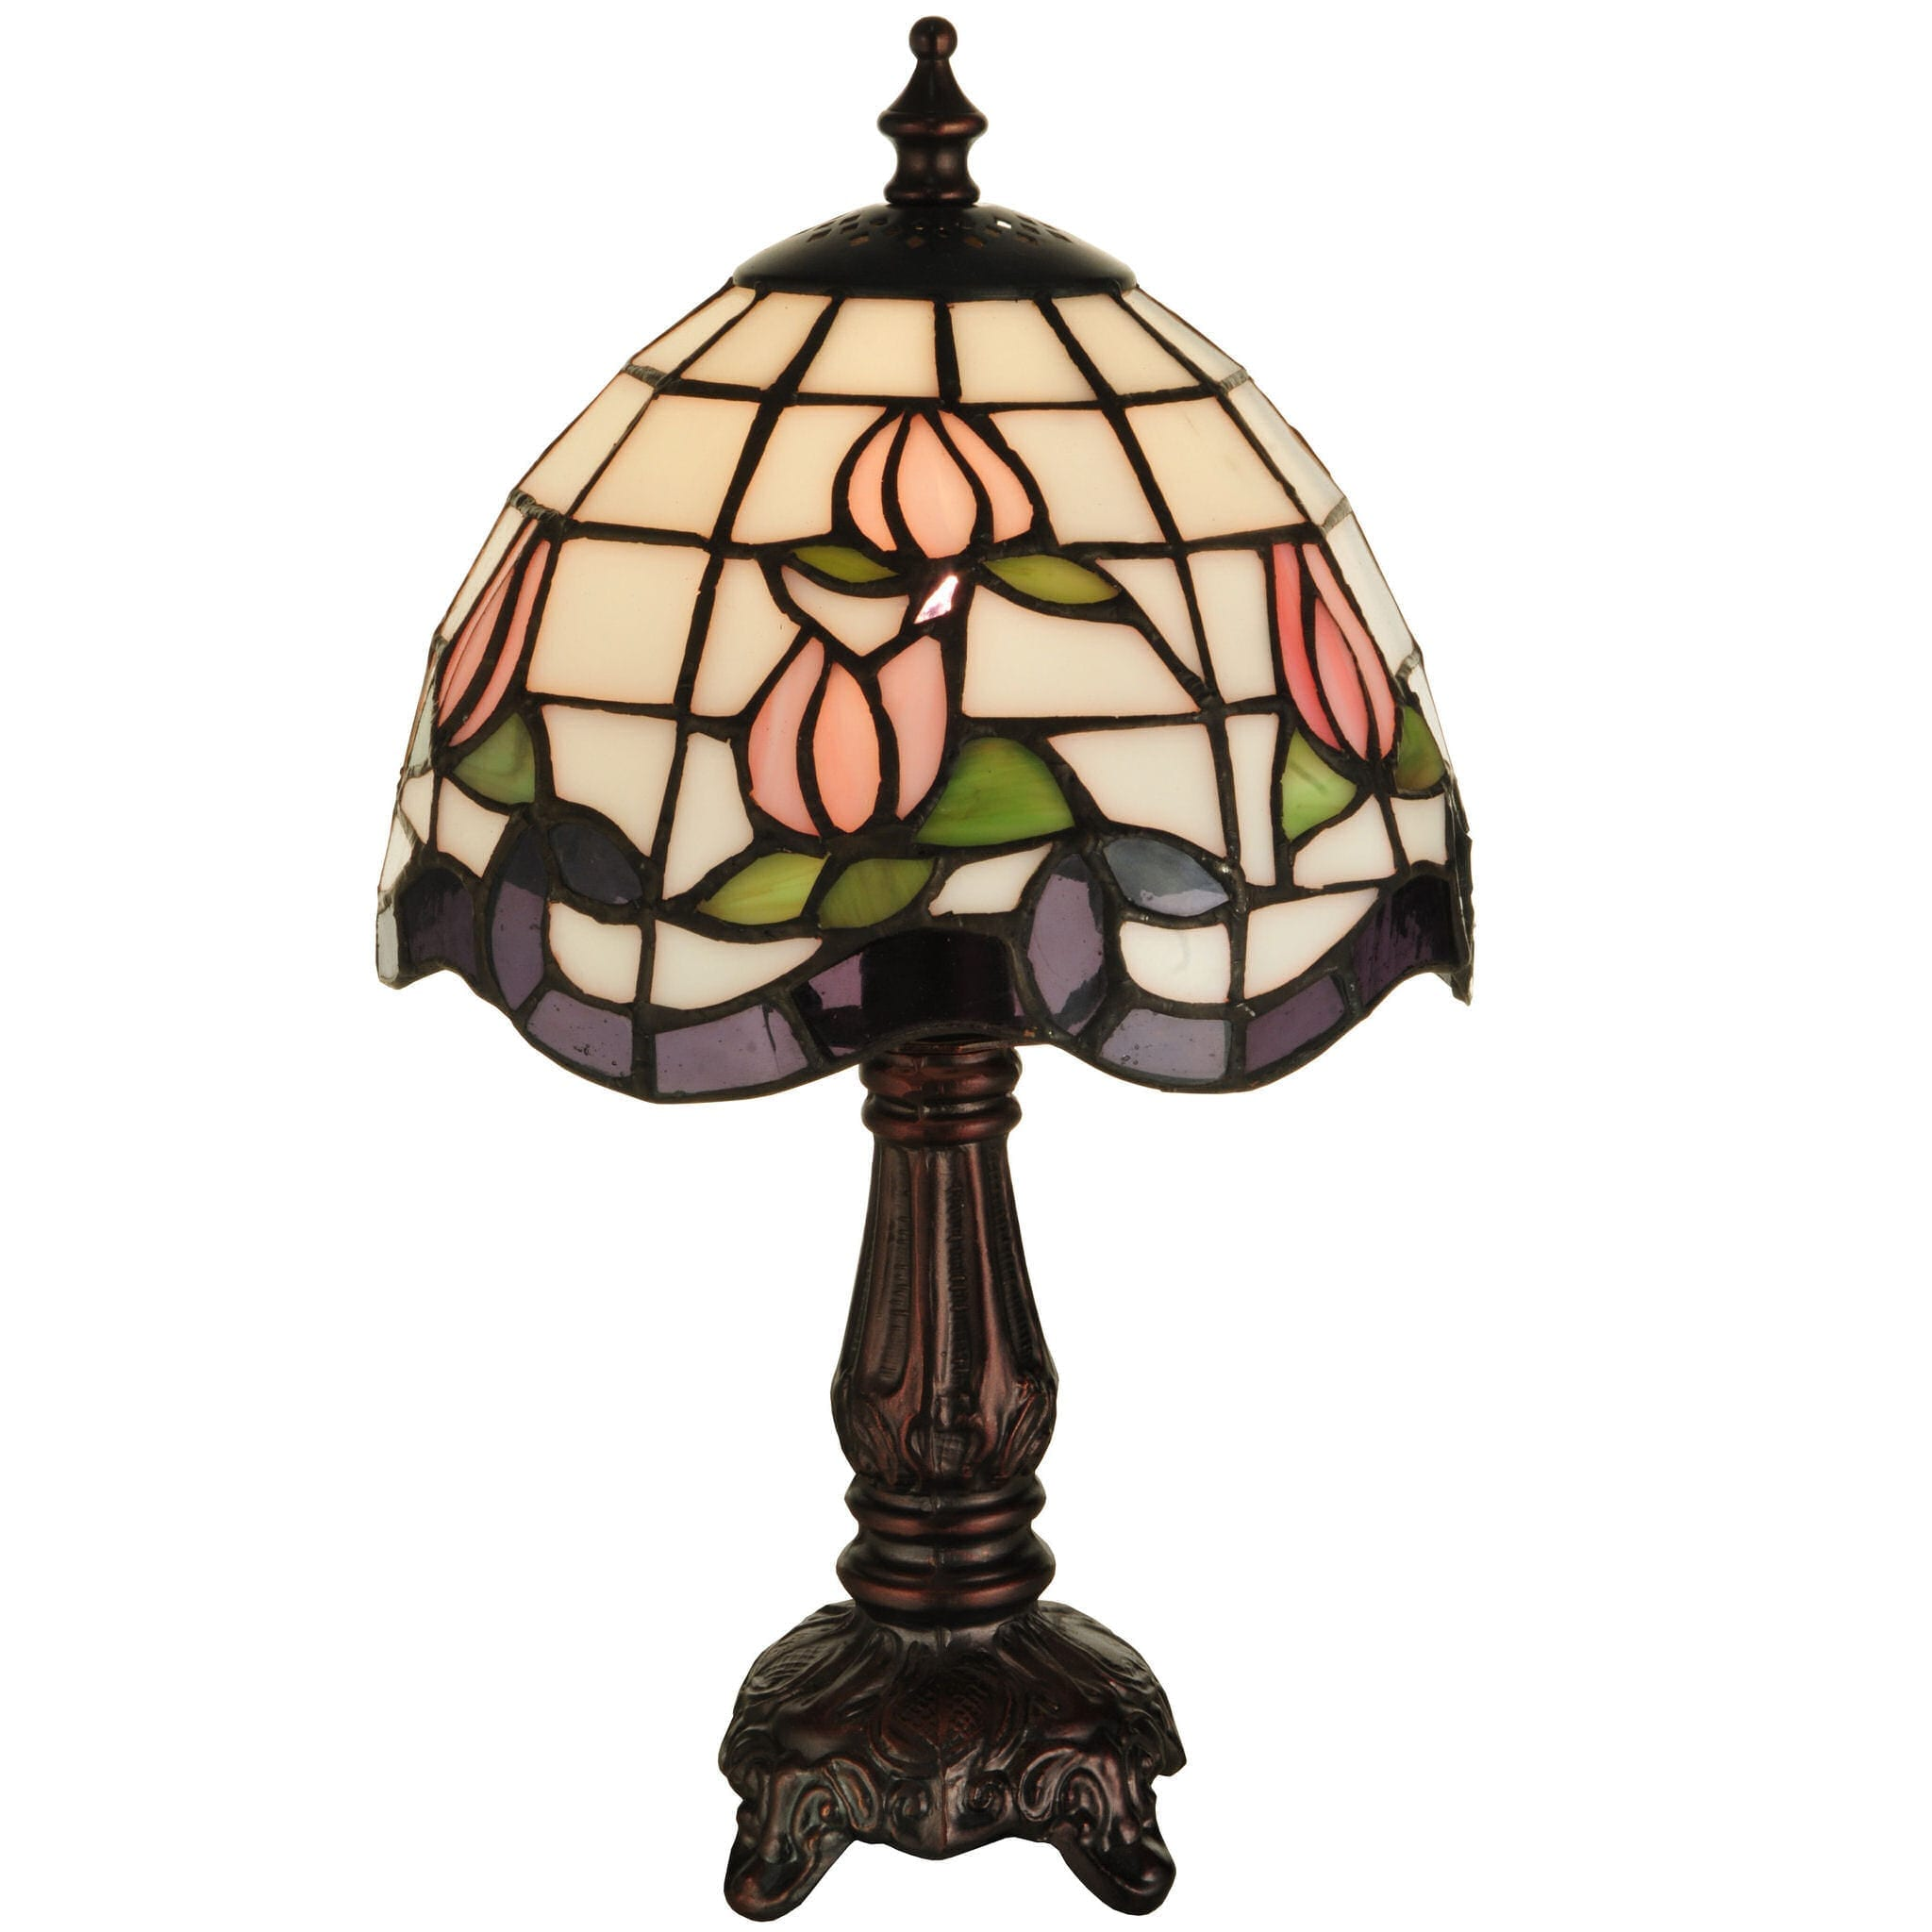 Small Tiffany Rose Border Lamp Stained Glass Lighting For Home Decor